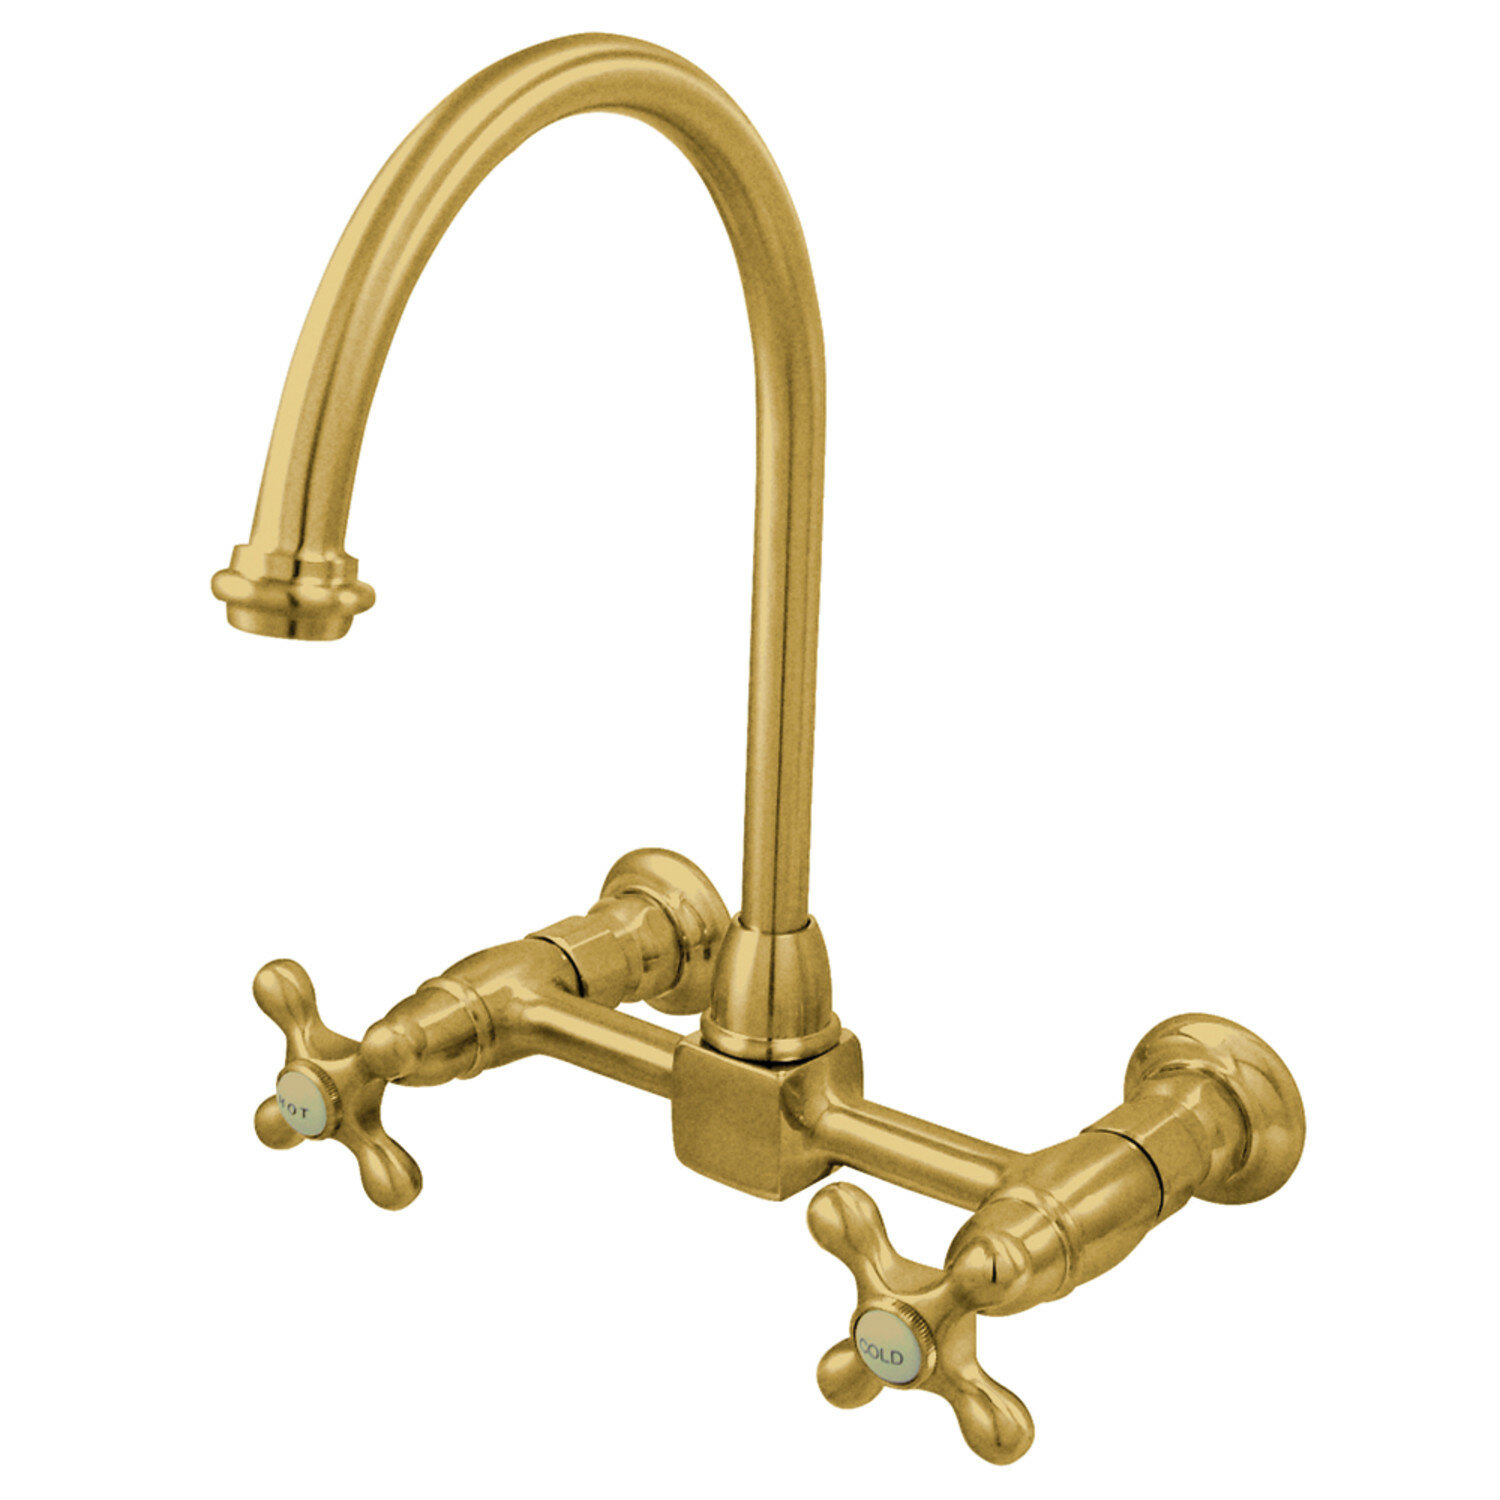 Restoration Wall Mounted Double Handle Kitchen Faucet